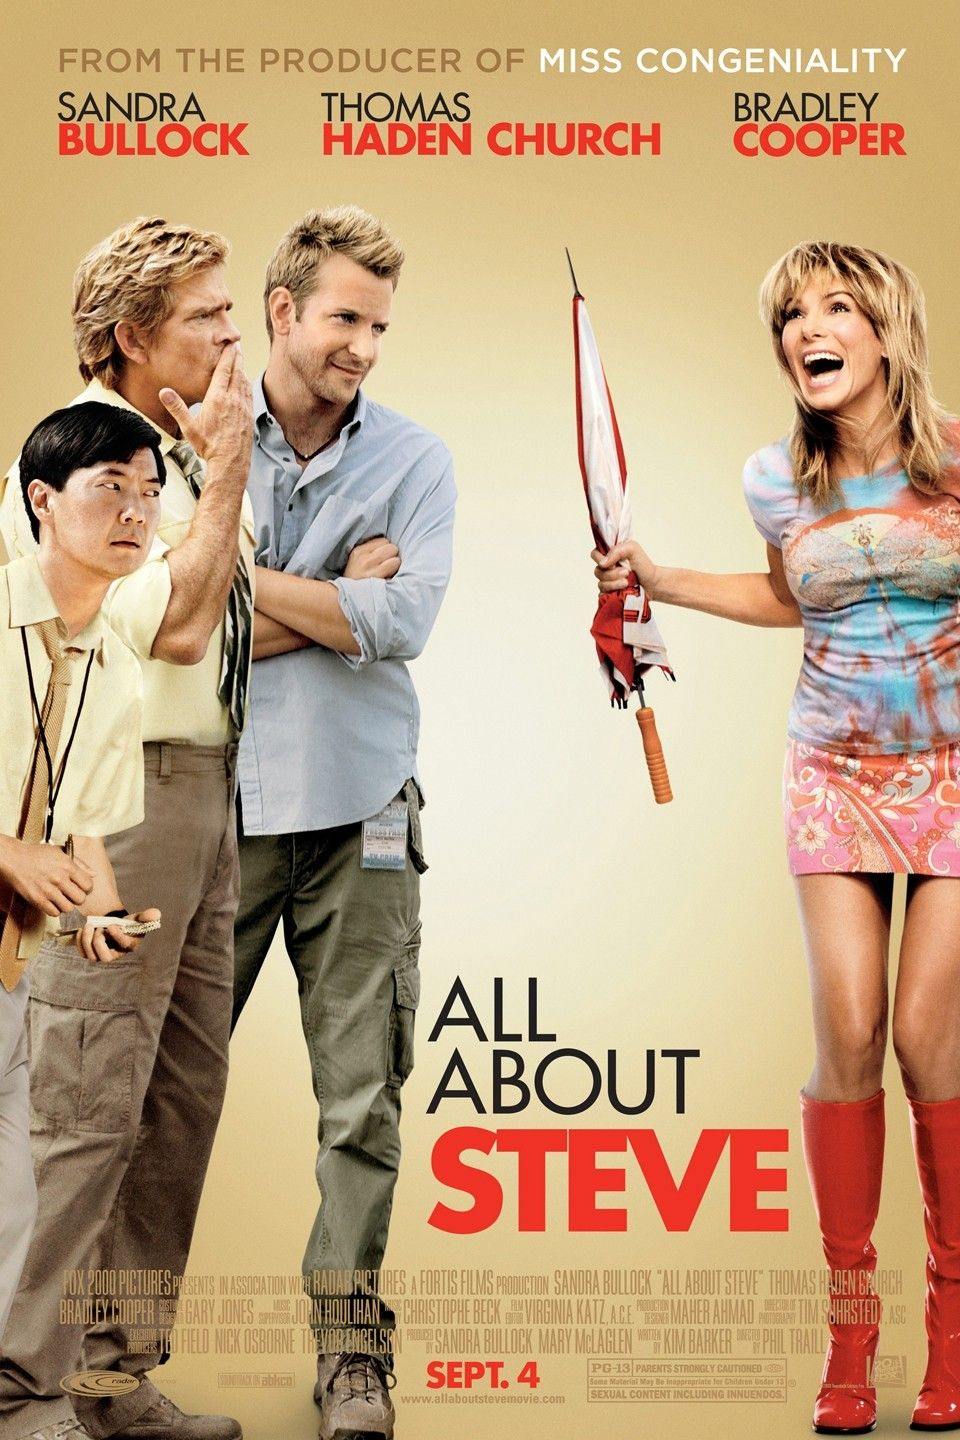 All Comedy Movies In 2009 pin on best movies